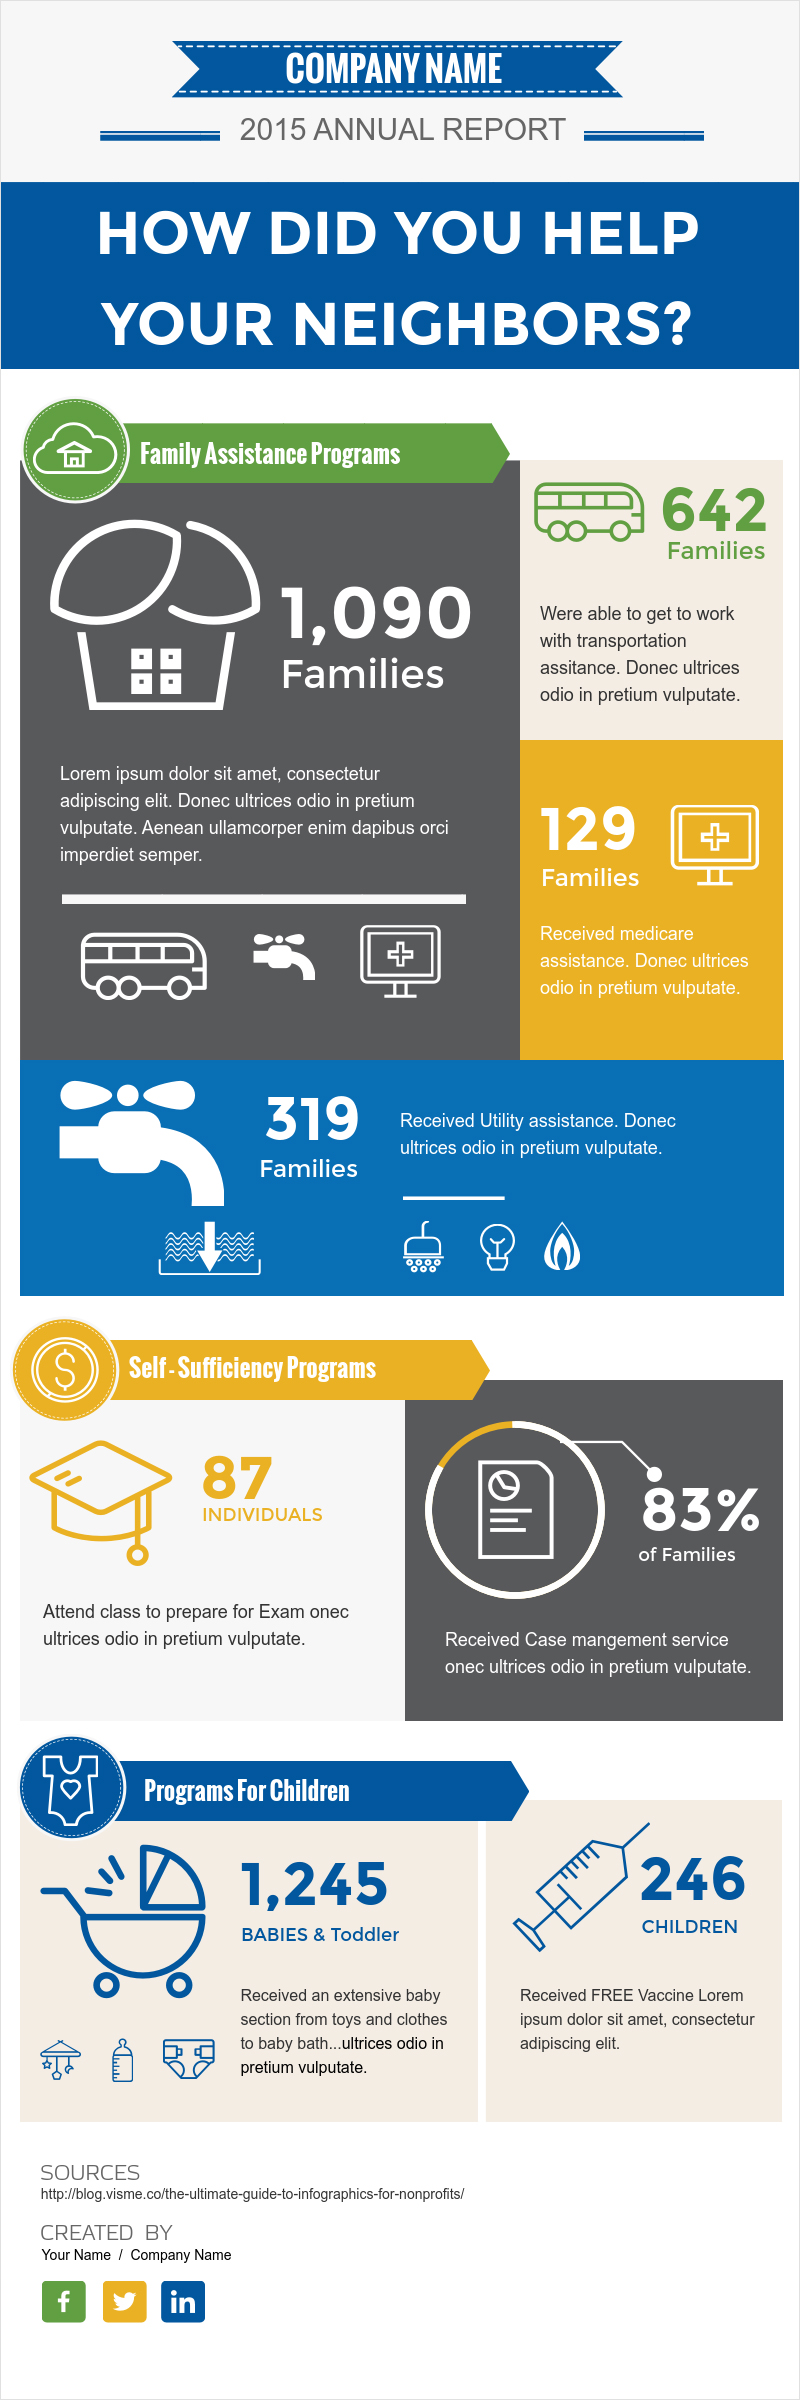 visme introduces new infographic templates for non